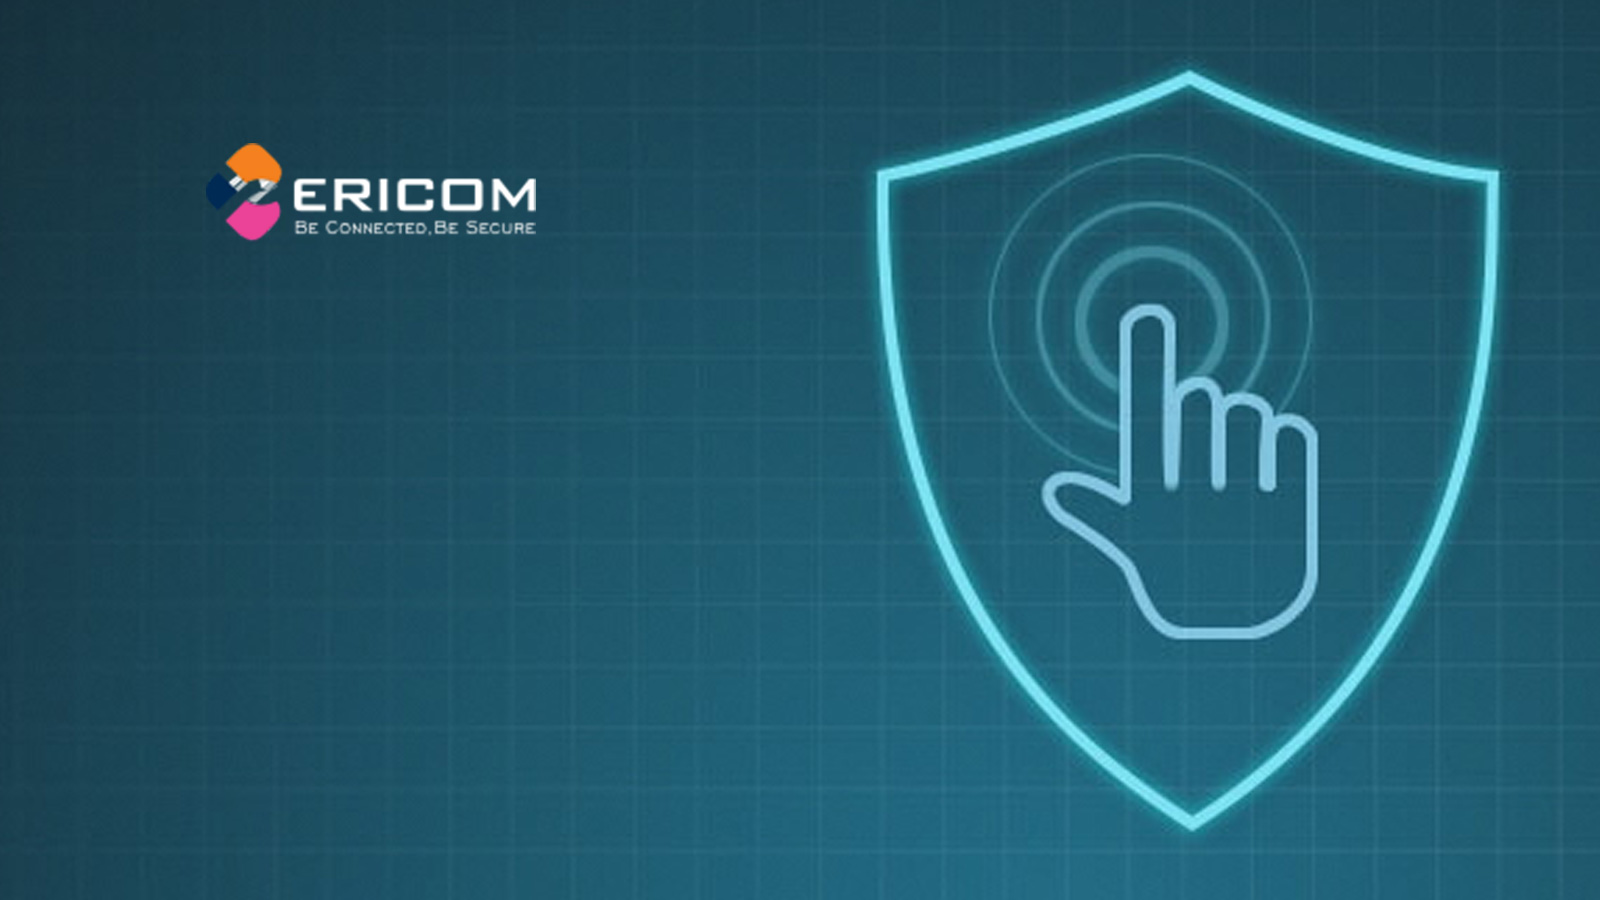 Latest-release-of-ericom's-remote-browser-isolation-solution-adds-intelligent-defense-against-phishing-attacks